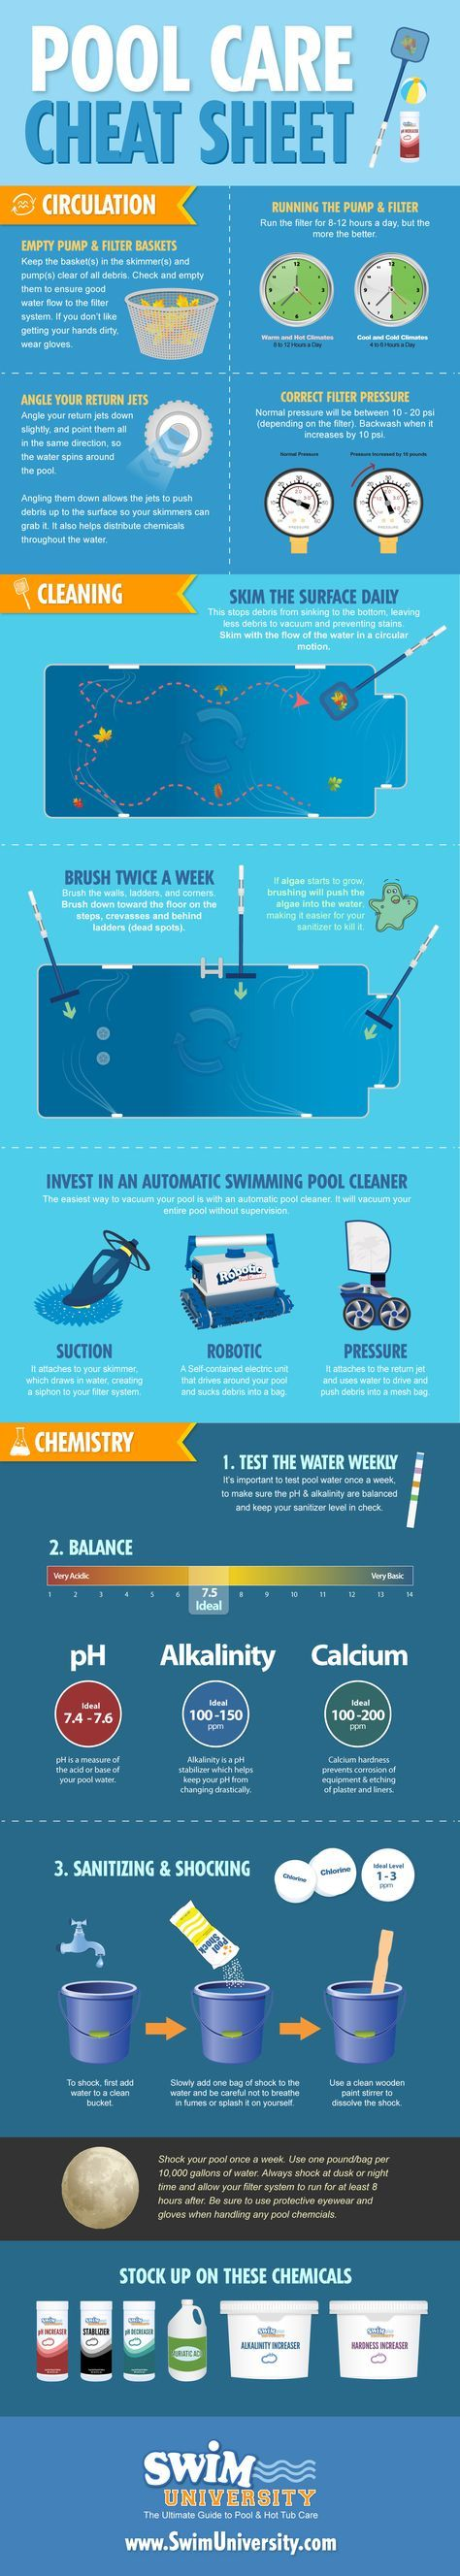 Best 25+ Pool equipment ideas on Pinterest | Pool equipment cover ...